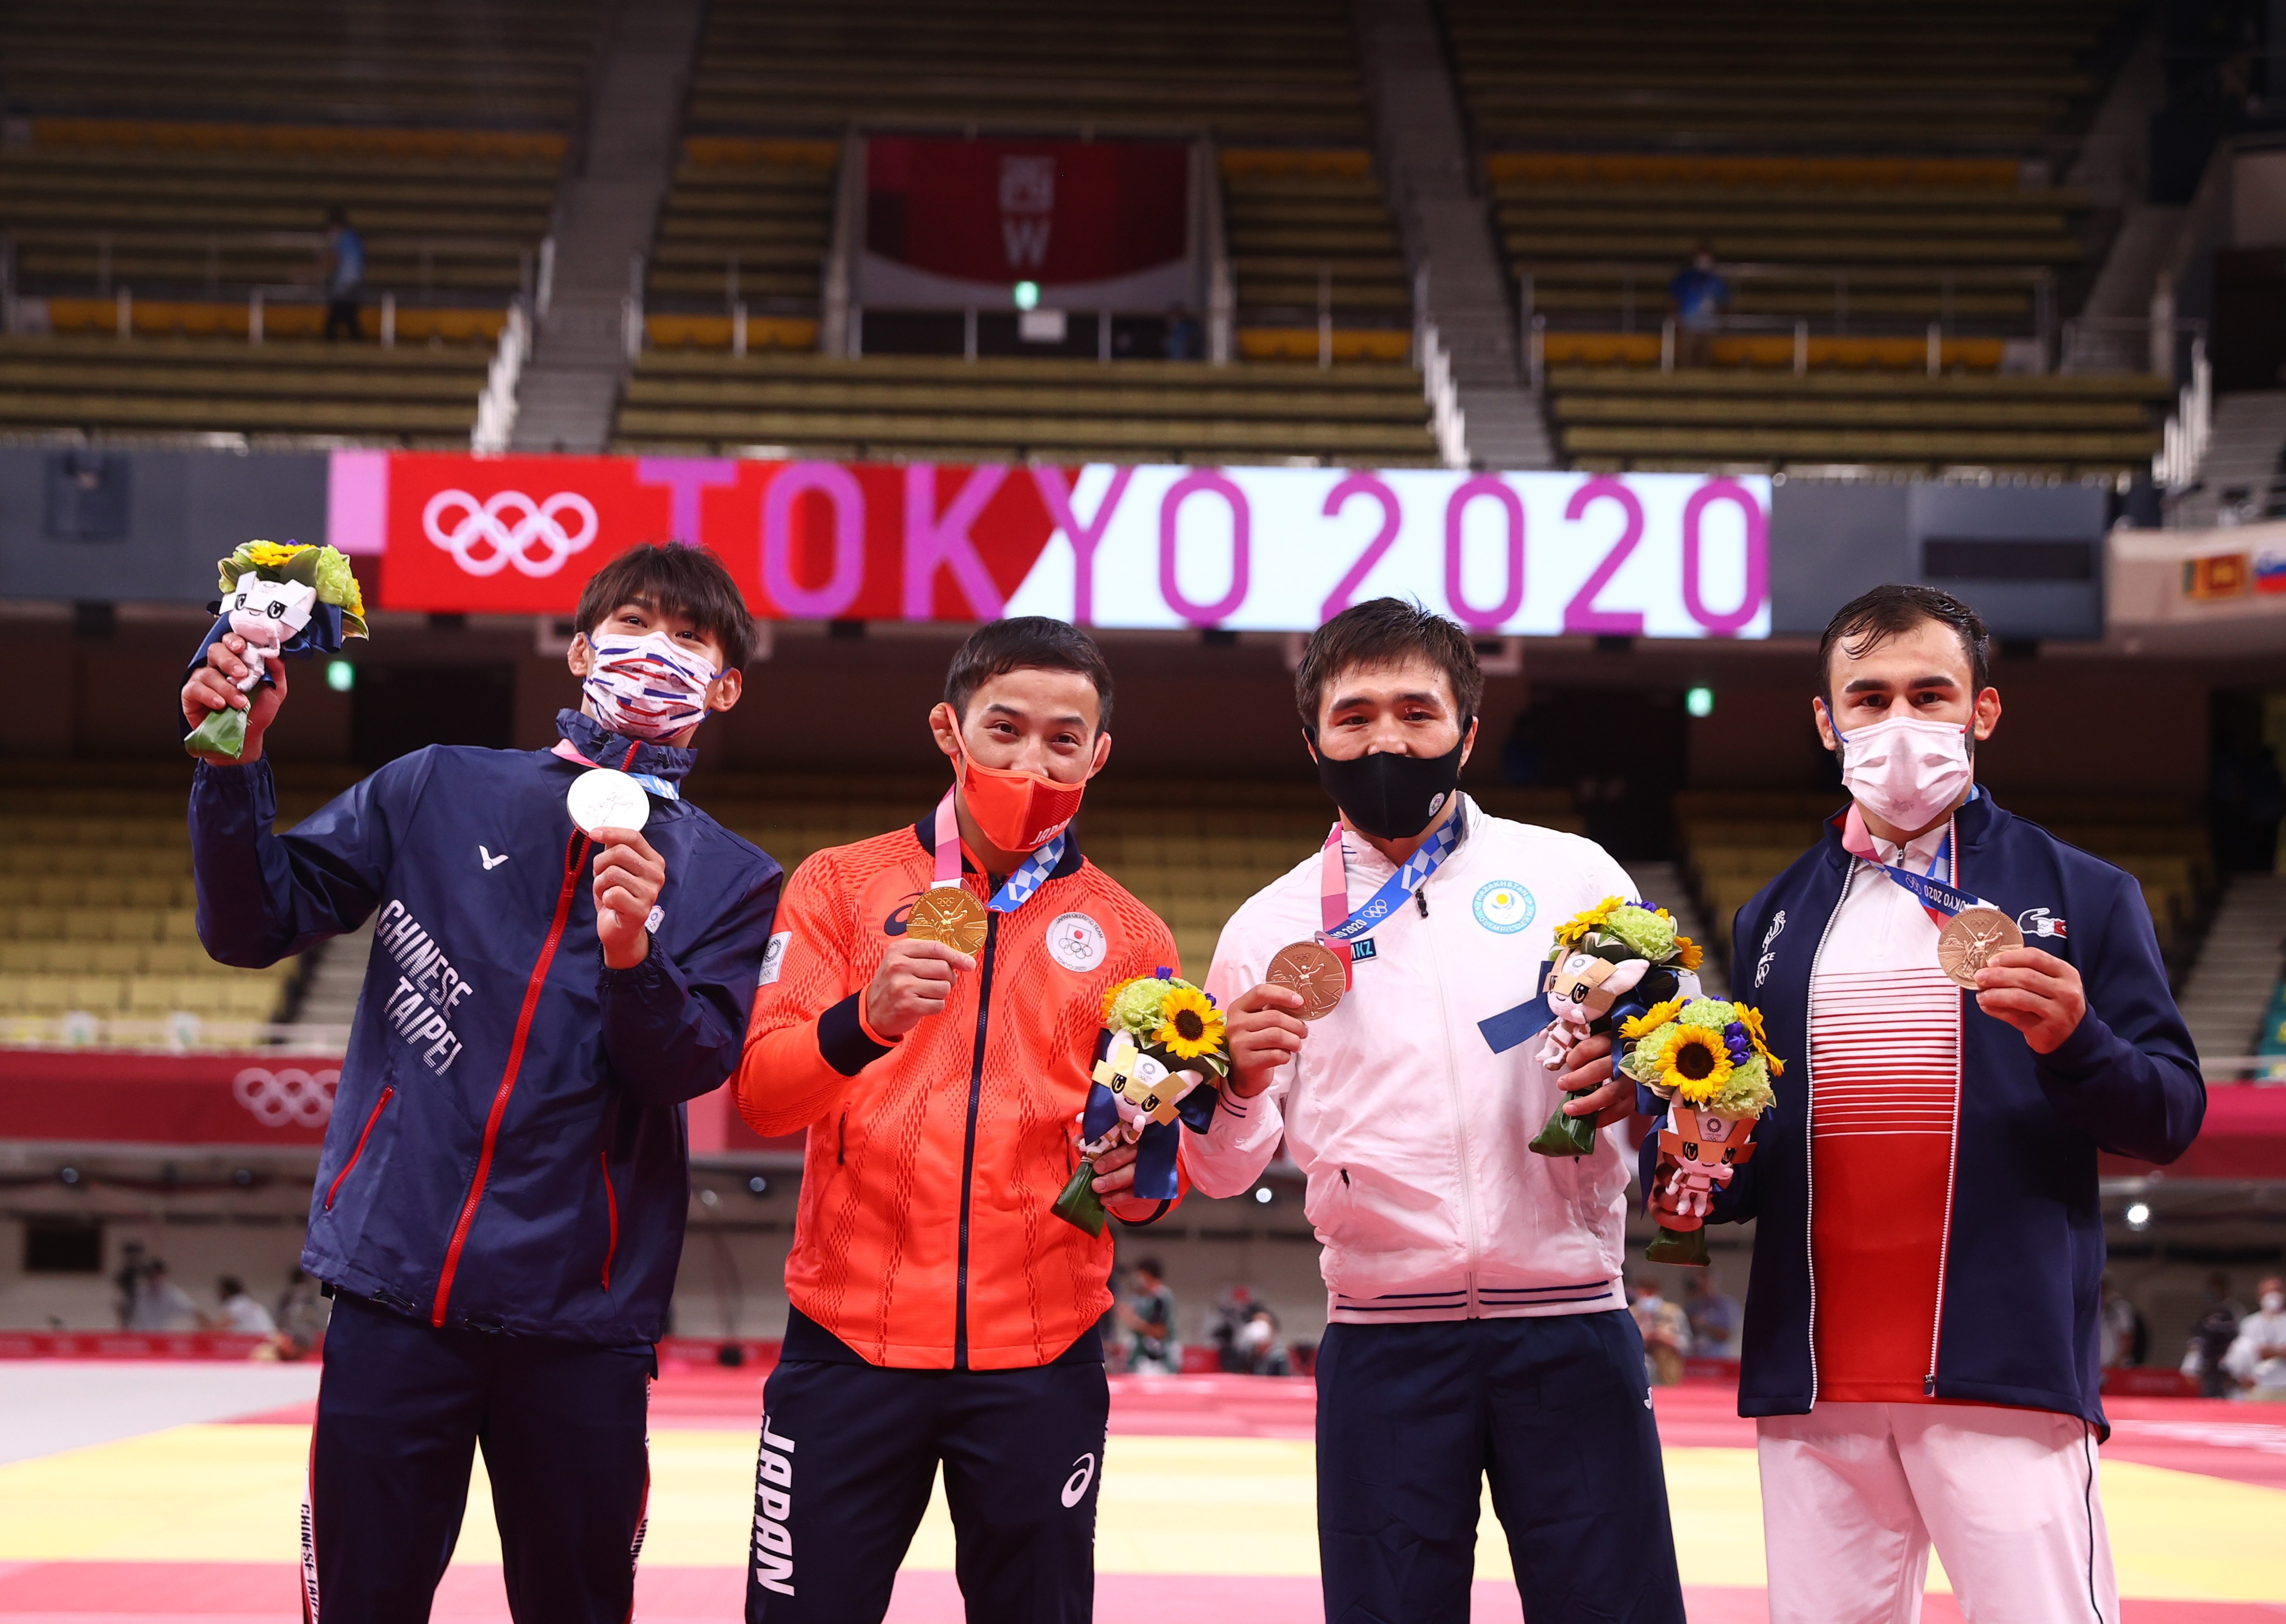 Tokyo 2020 Olympics - Judo - Men's 60kg - Medal Ceremony - Nippon Budokan - Tokyo, Japan - July 24, 2021. Gold medallist Naohisa Takato of Japan poses for a picture with silver medallist Yang Yung Wei of Taiwan, bronze medallist Yeldos Smetov of Kazakhstan, and bronze medallist Luka Mkheidze of France REUTERS/Sergio Perez